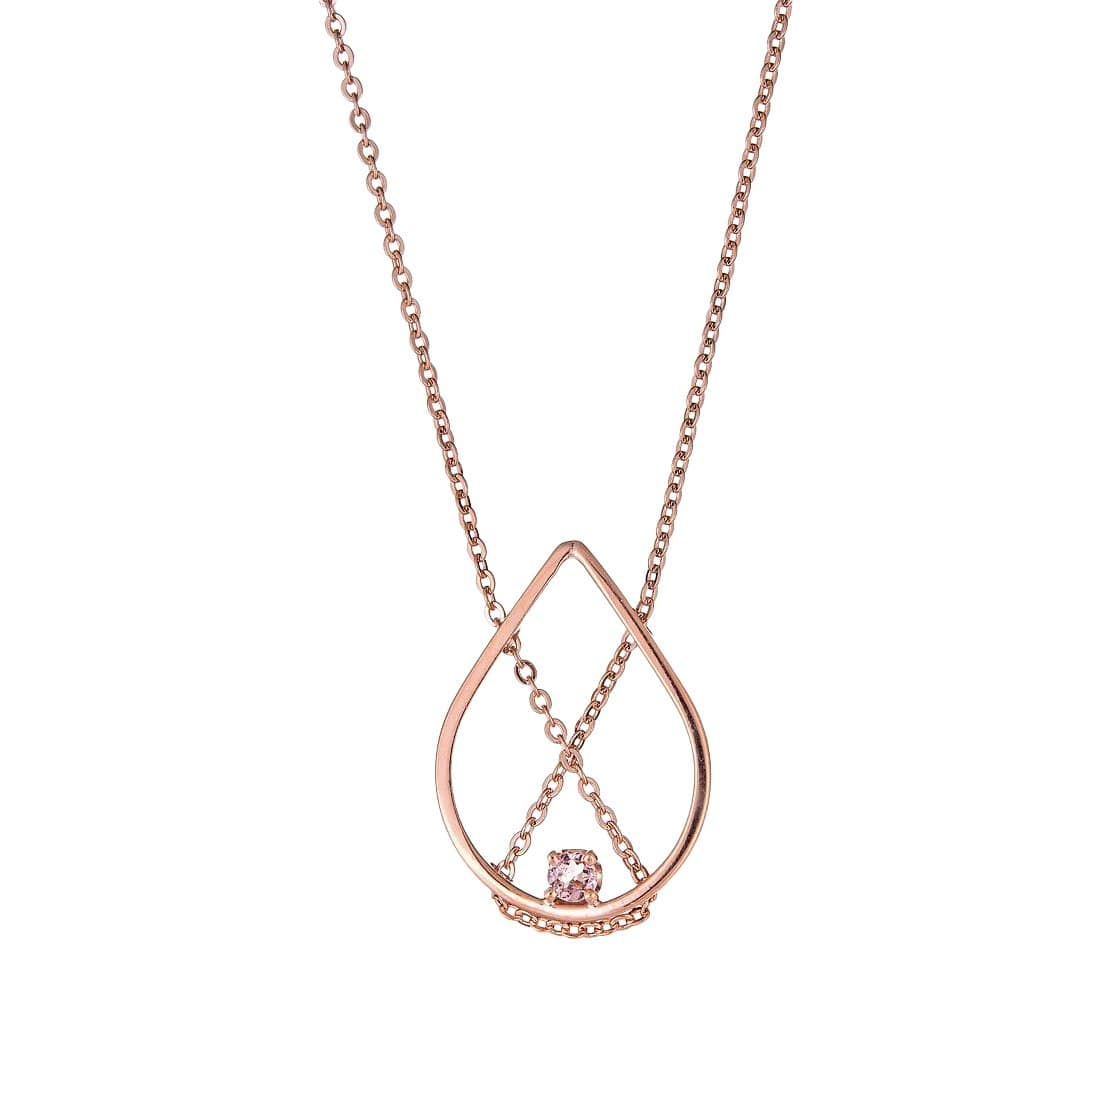 Petal Rose Gold + Pink Tourmaline Necklace